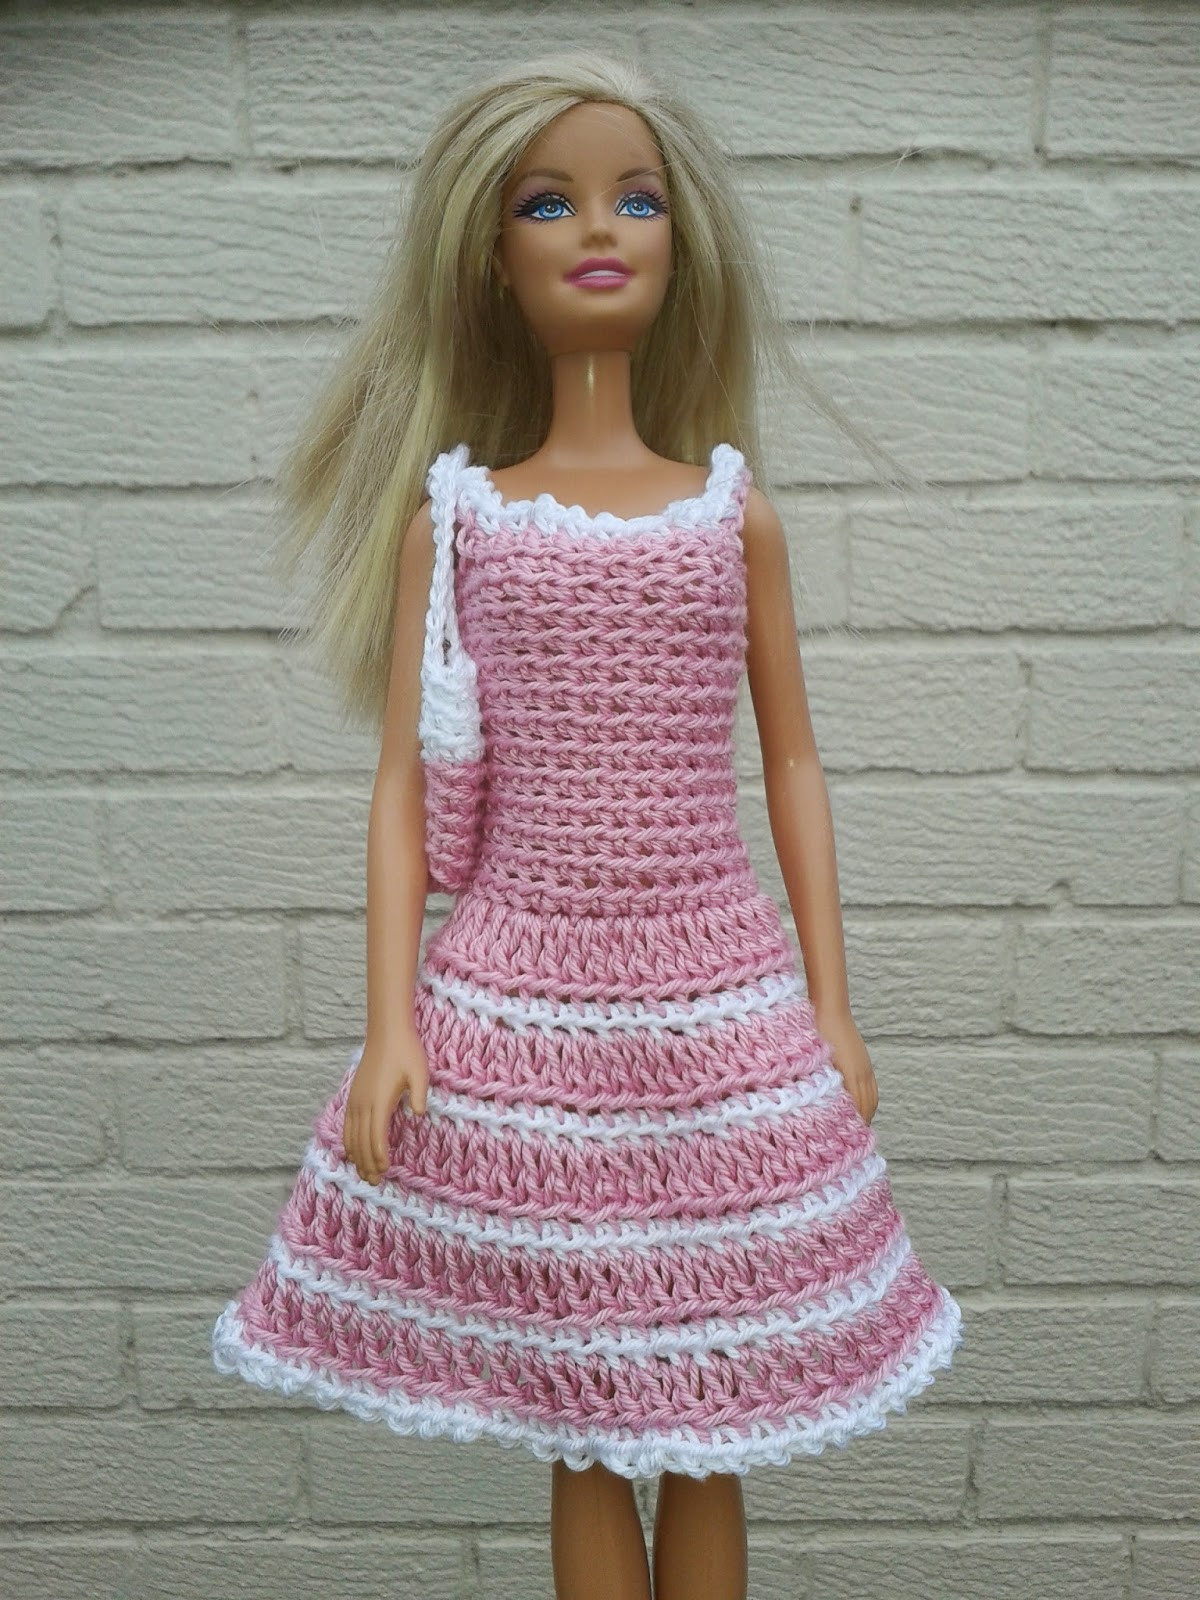 Crochet Doll Dress Fresh Pretty Crocheted Dresses and Skirts for Summer Of Unique 43 Pictures Crochet Doll Dress